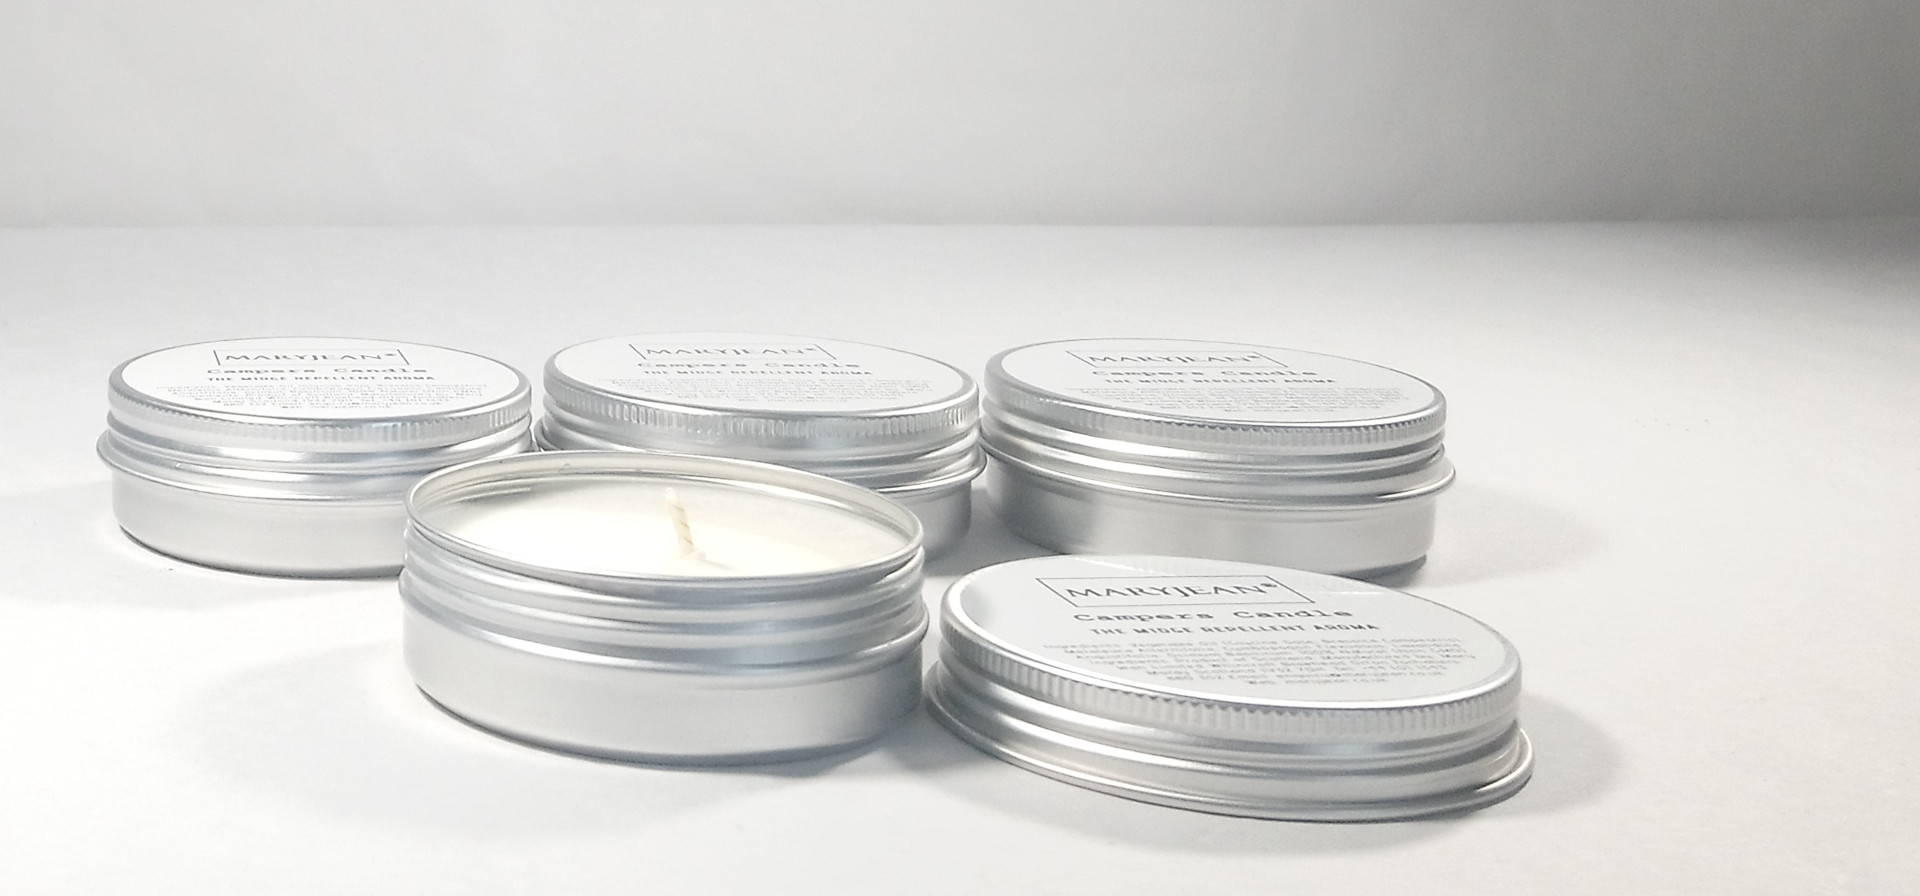 Natural Weekend Camping Travel Insect Repellent Candle With Lemongrass Bumper 4 Pack Bundle en_GB